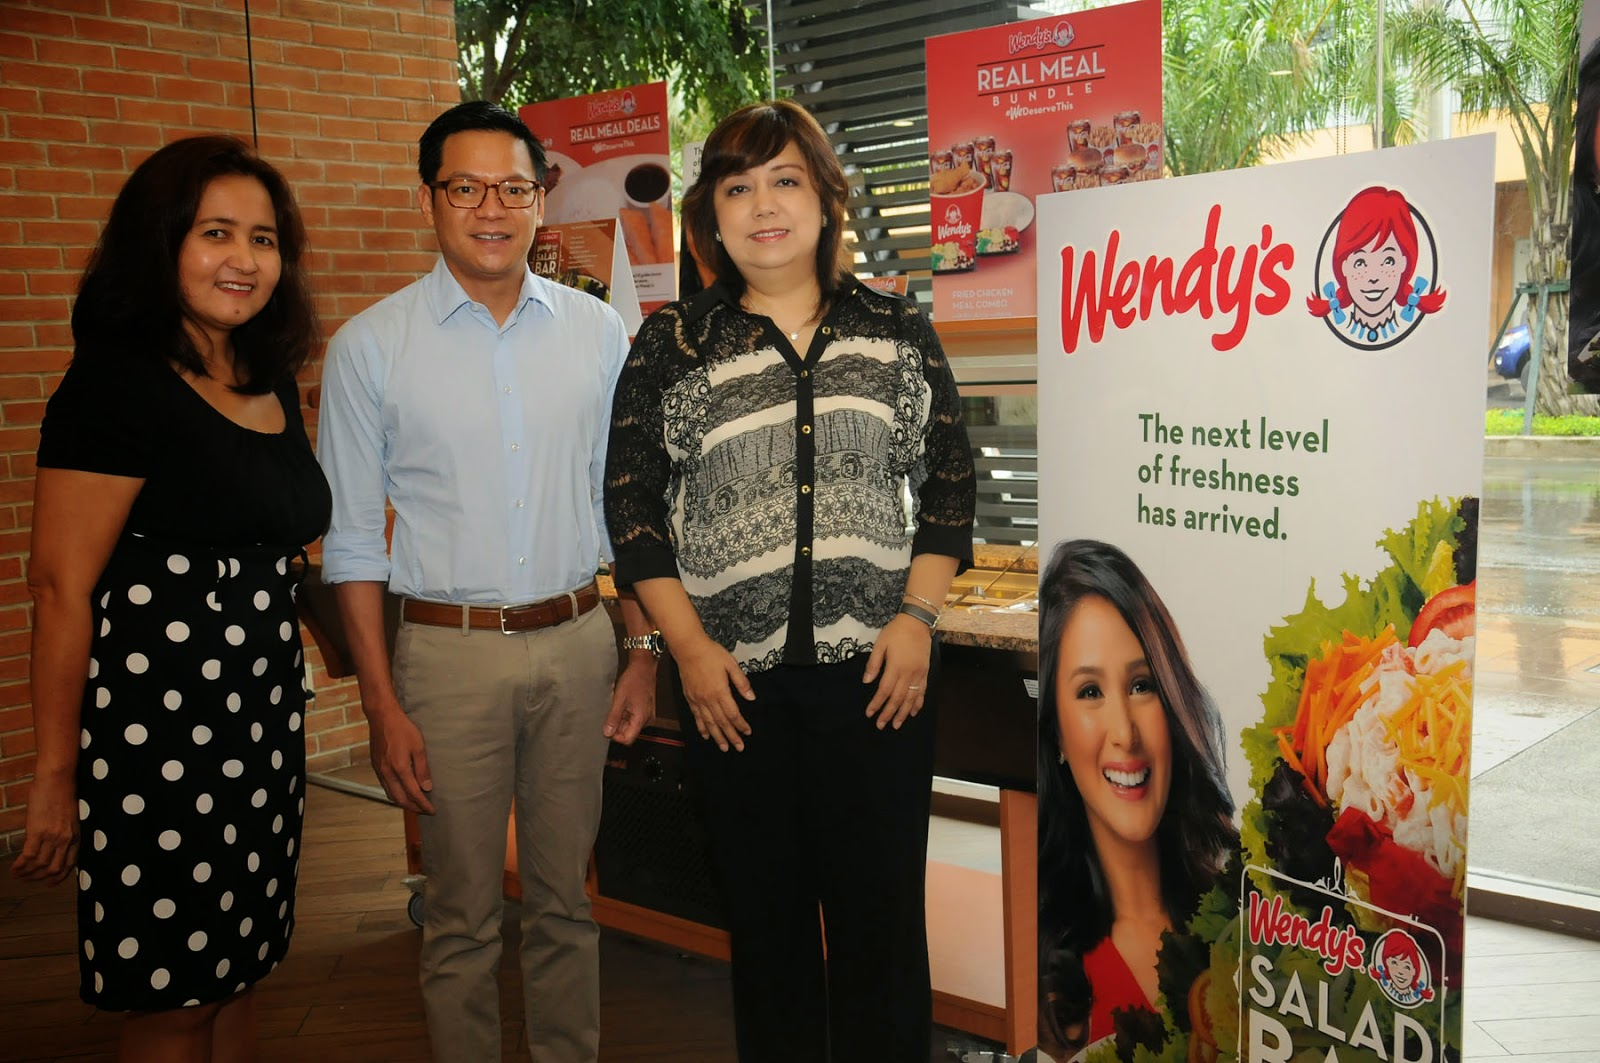 Wendys Salad Bar Is Back Maxi Vanelia Apple 3in1 Mr Michael Kho Ceo President Philippines Center Ms Marizu Baser Left Marketing Director And Mrs Yvette Pardo Orbeta Chairman Of The